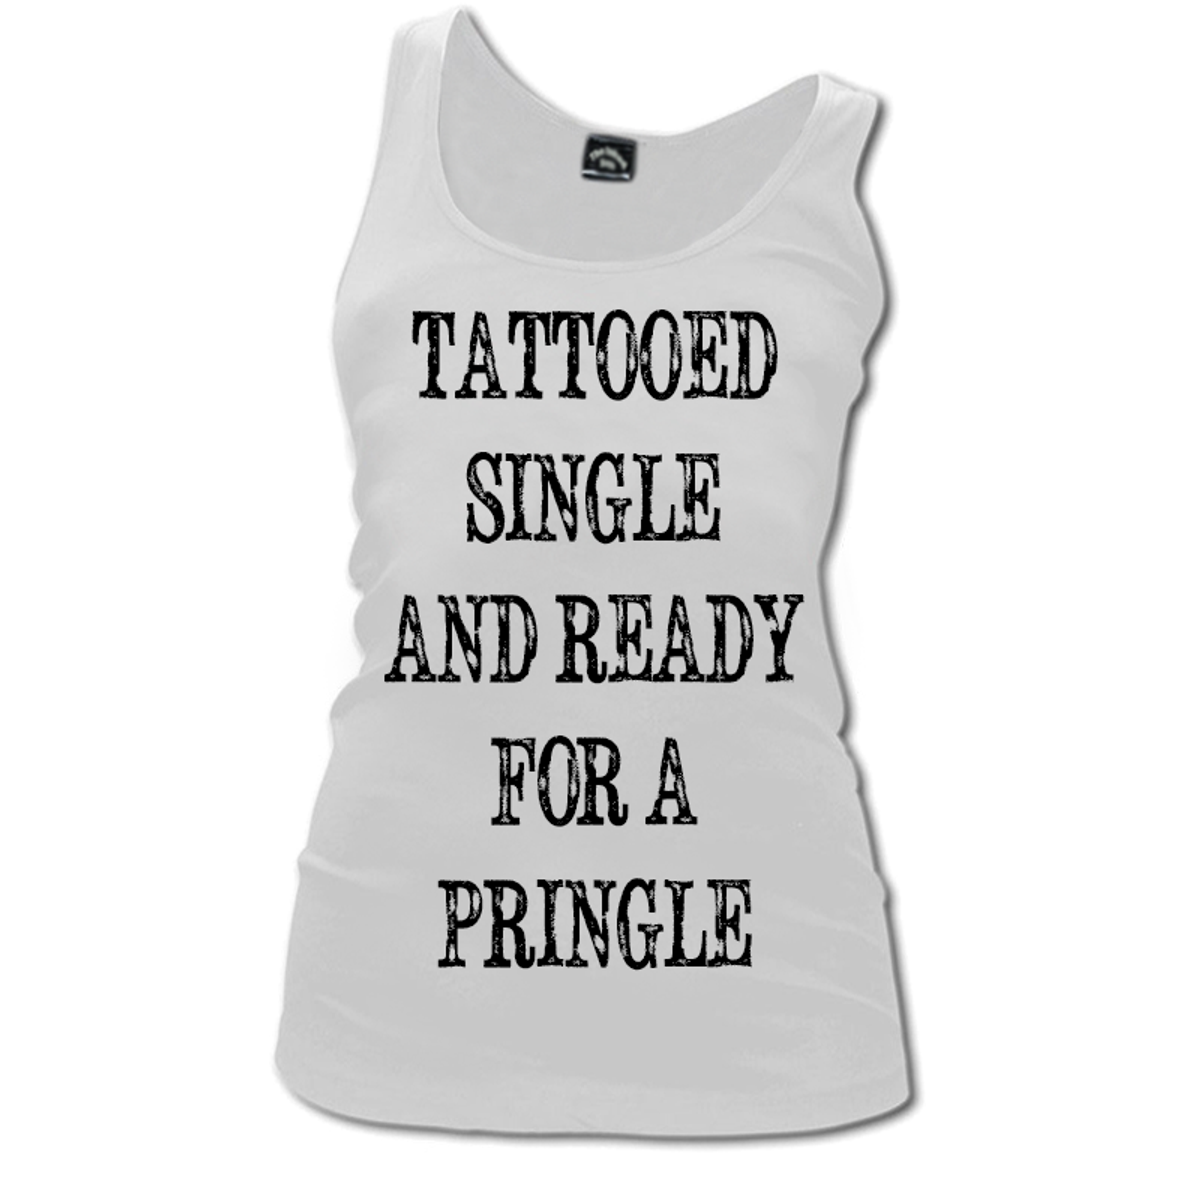 pringle single girls Single as a pringle quotes - 1 single as a dollar and i'm not looking for change read more quotes and sayings about single as a pringle.